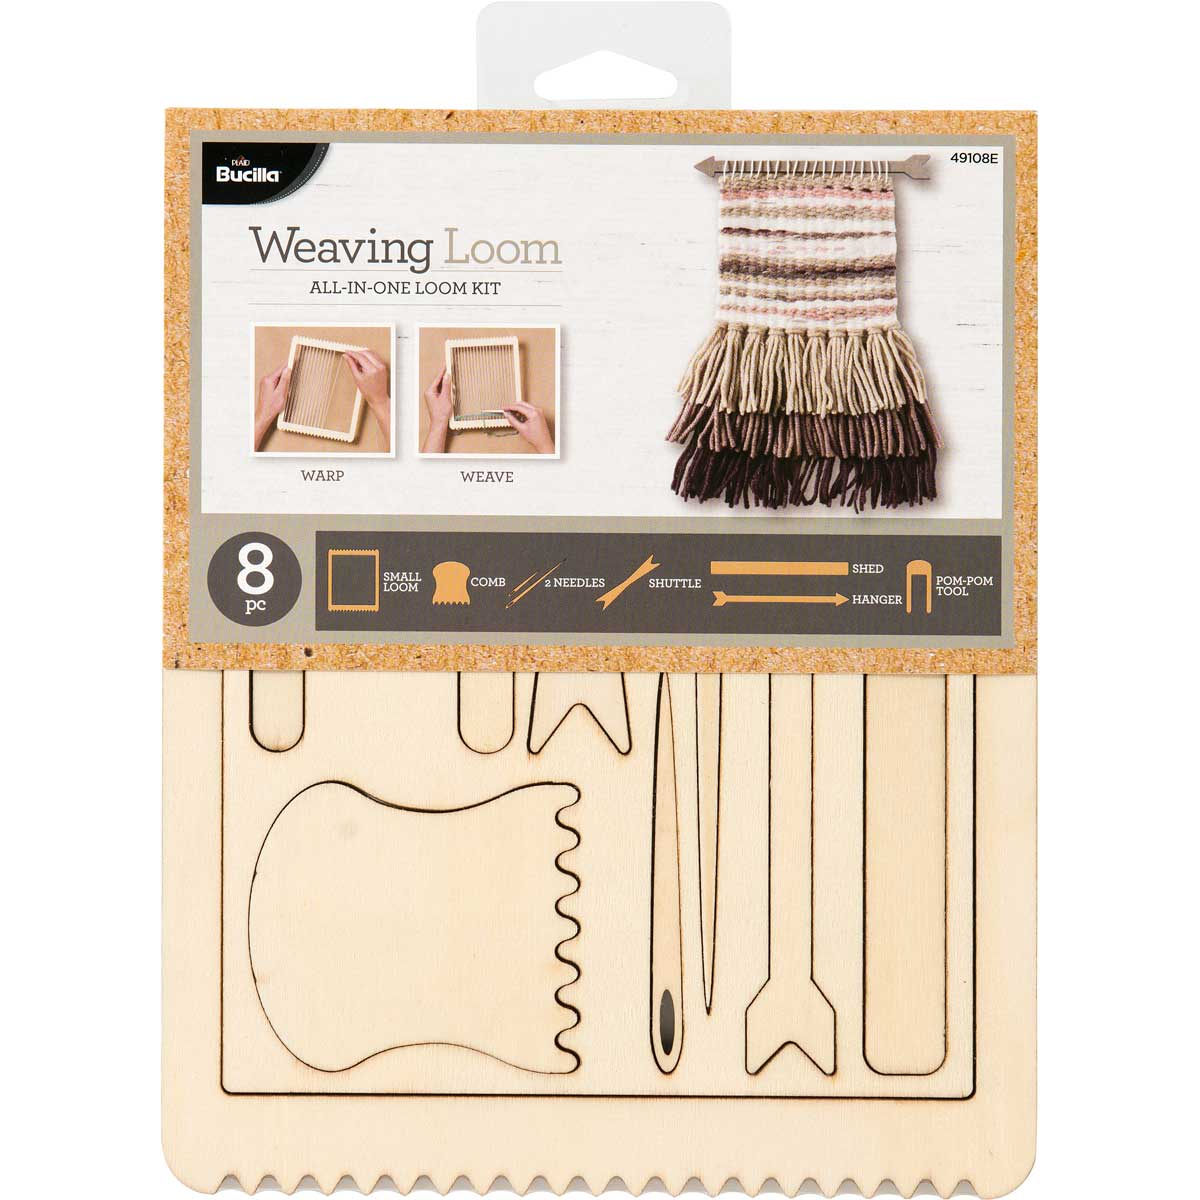 Bucilla ® Weaving Loom All-In-One Kit - Rectangle, 8 piece - 49108